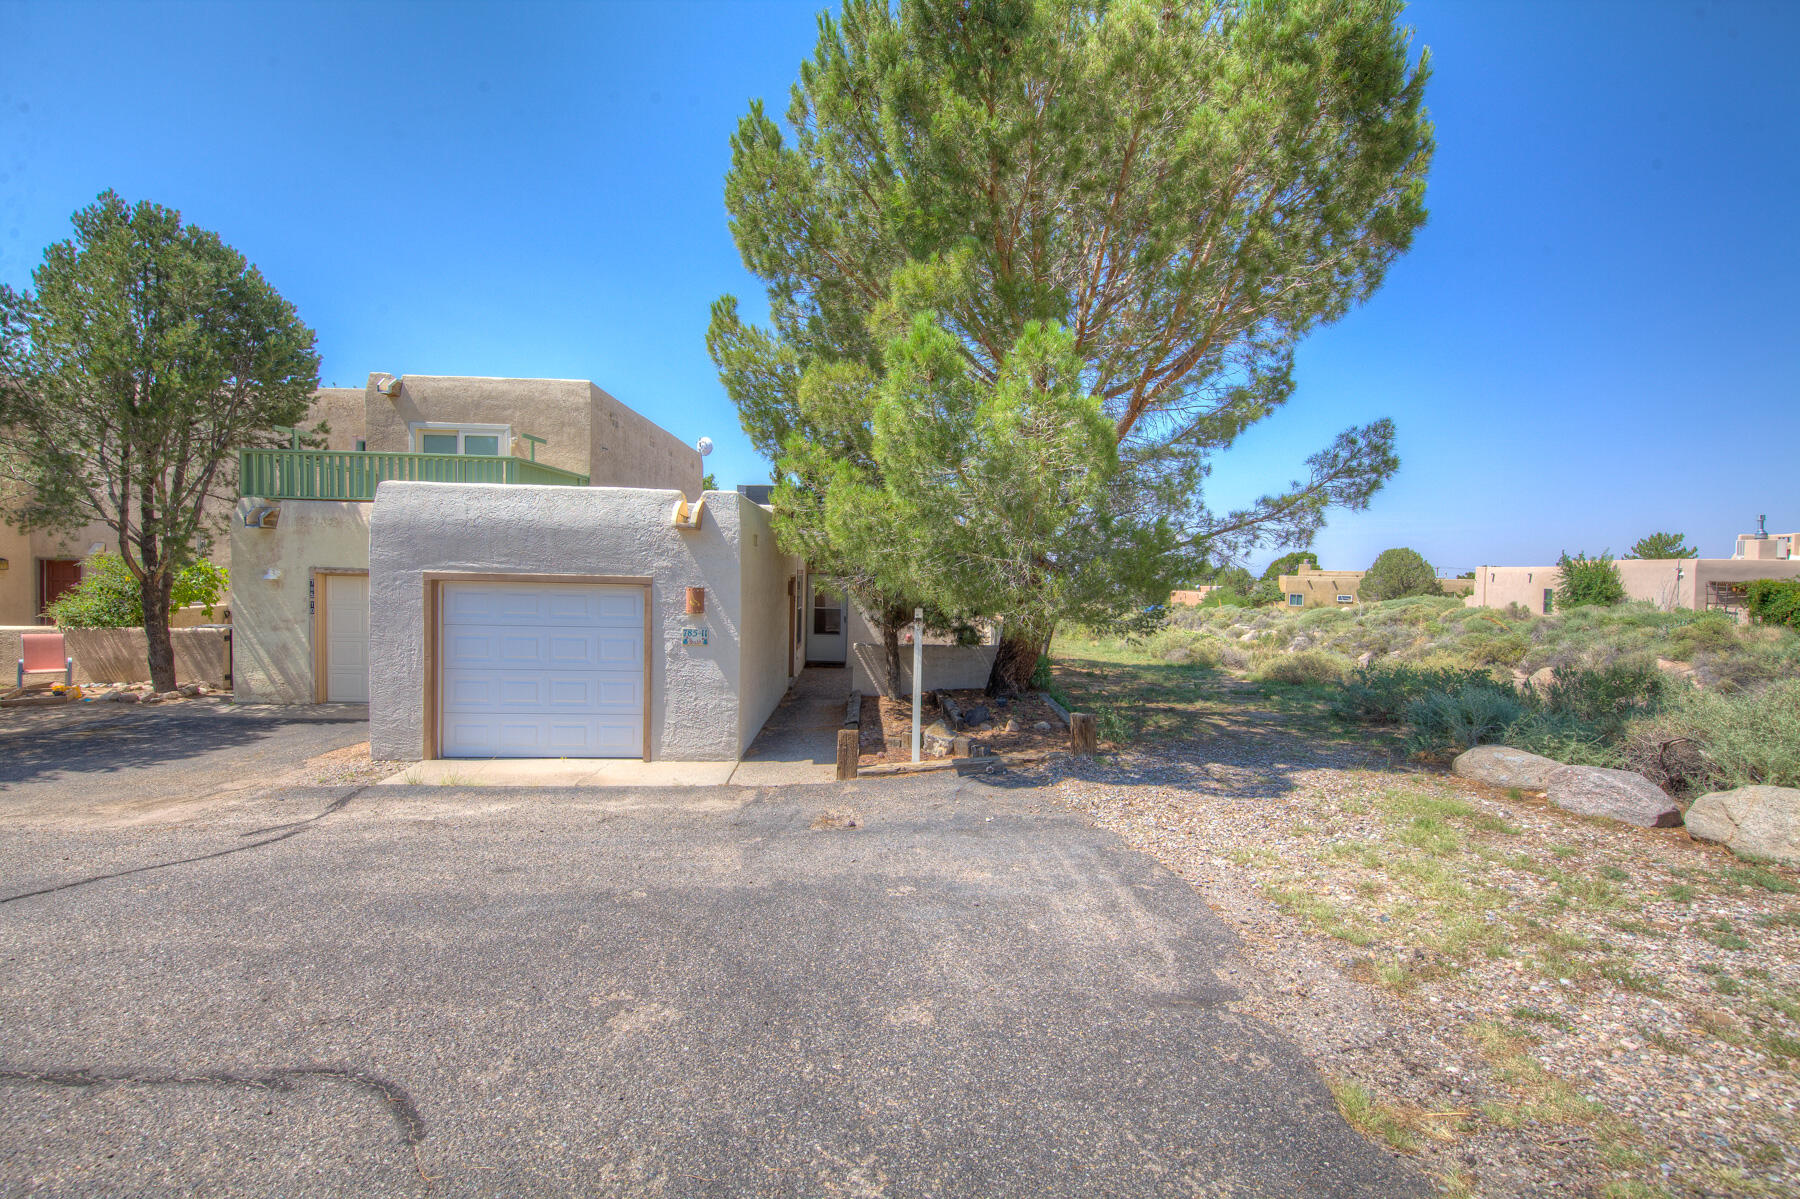 Great location enjoy this 2 bedroom 1.75 bath Townhome. Enjoy the views and all the Heights trails. Seller will consider a paint flooring allowance with acceptable offer.